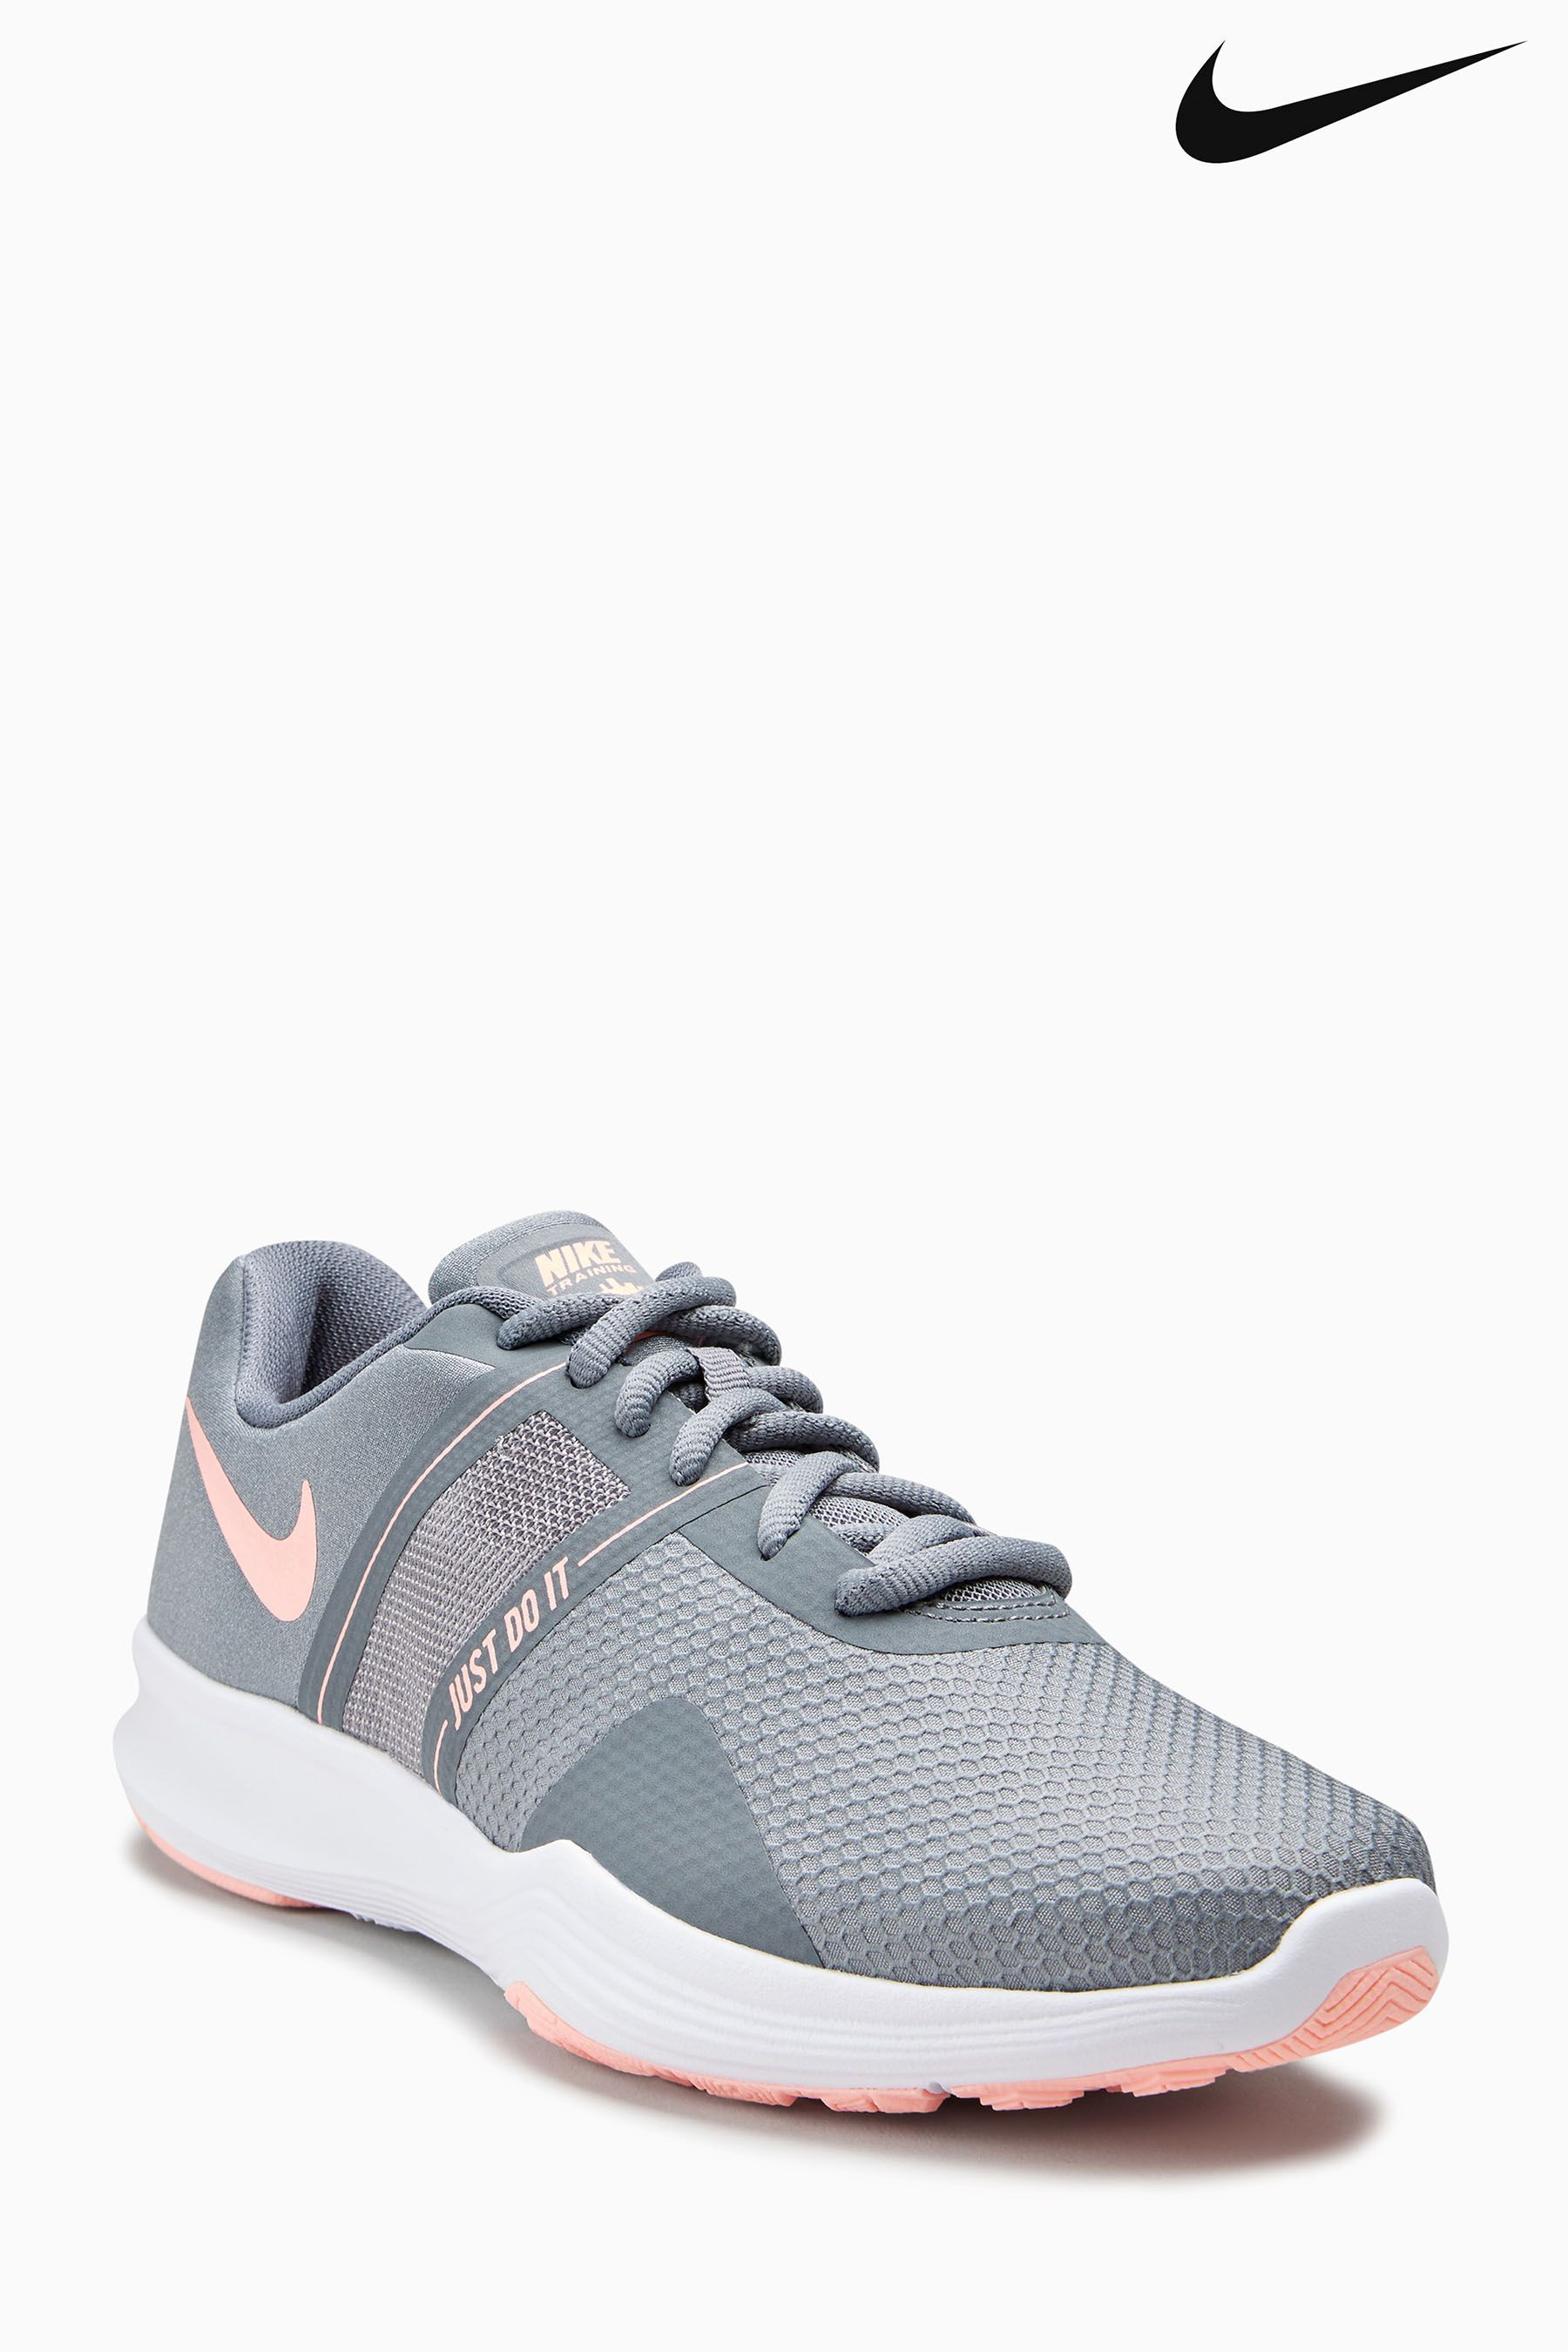 7fb3d89ad6308 Womens Nike Gym City Trainer 2 - Grey